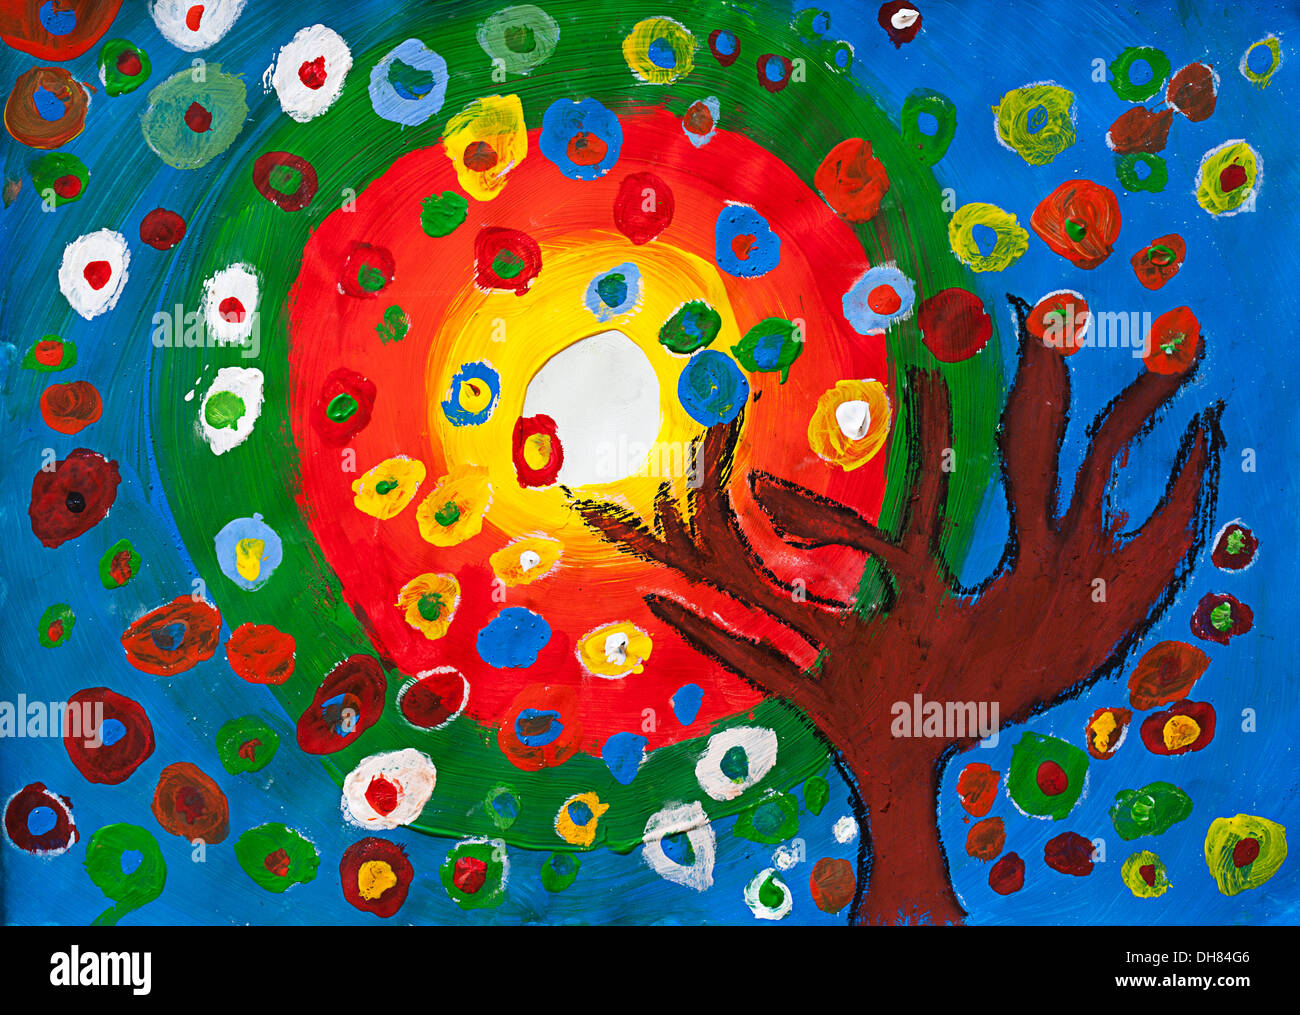 childrens artwork tree and